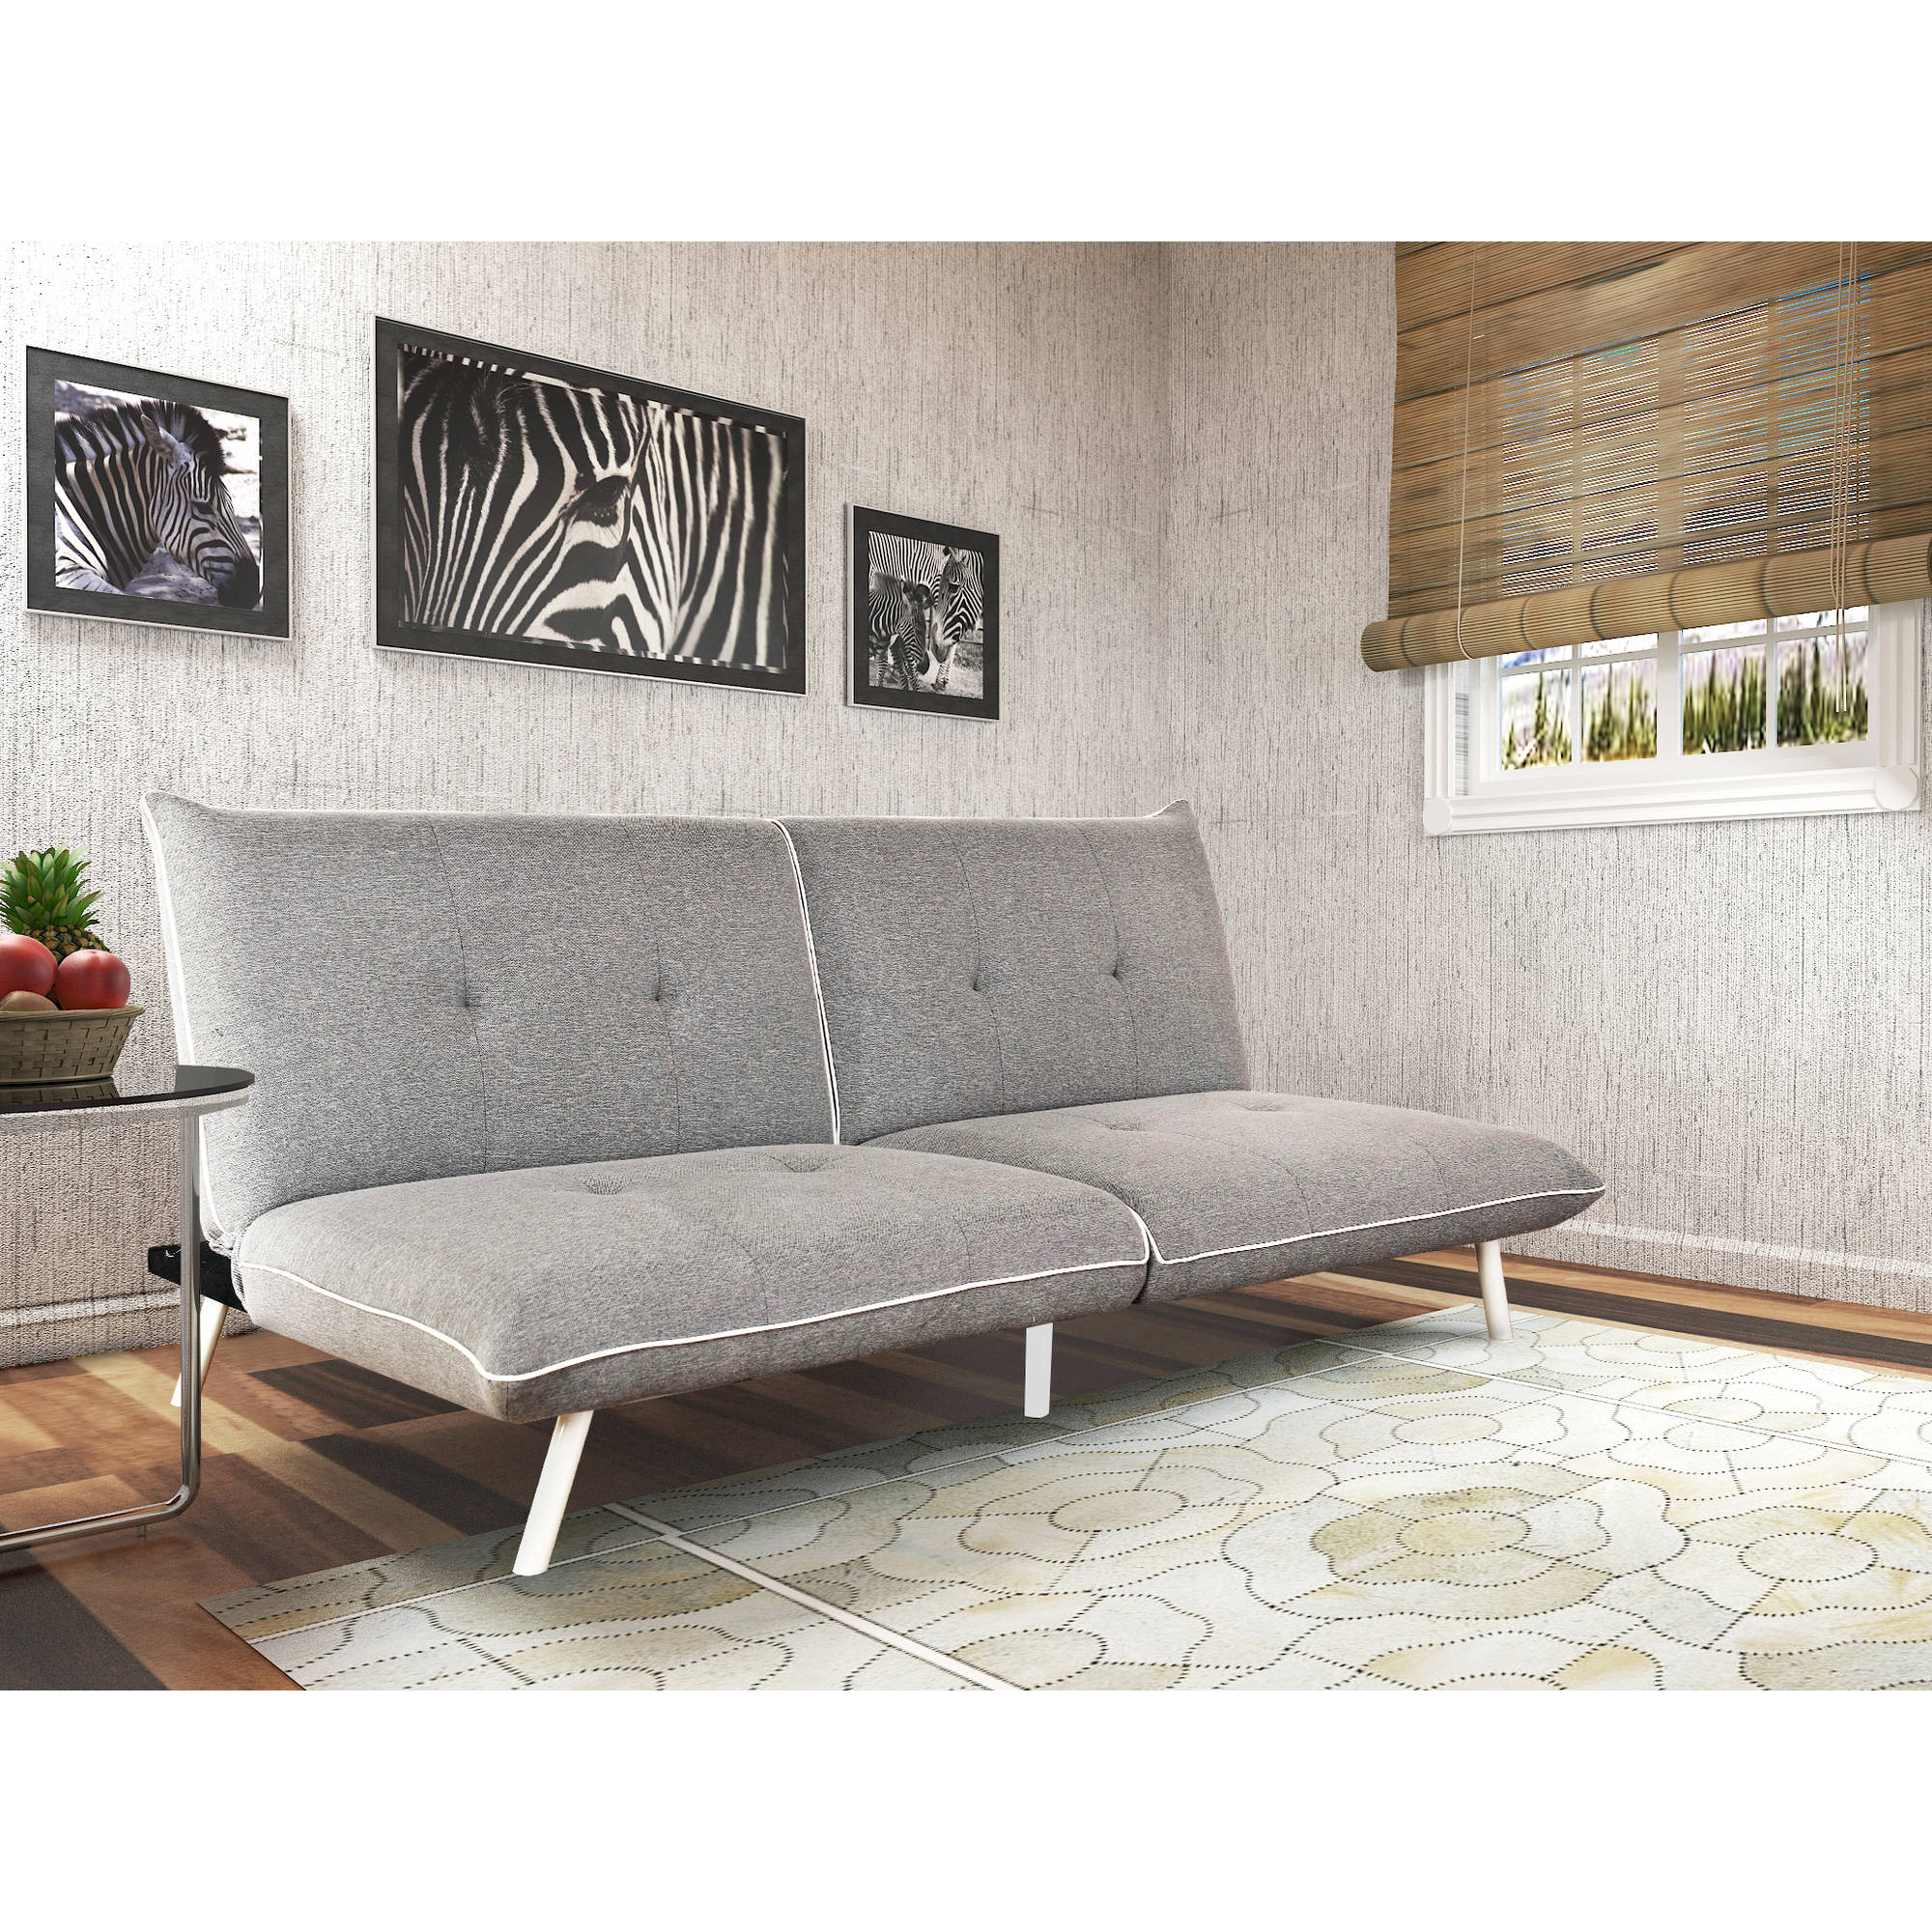 Mainstays Extra-Large Futon with Contrast Piping, Grey White by NISCO CO., LTD